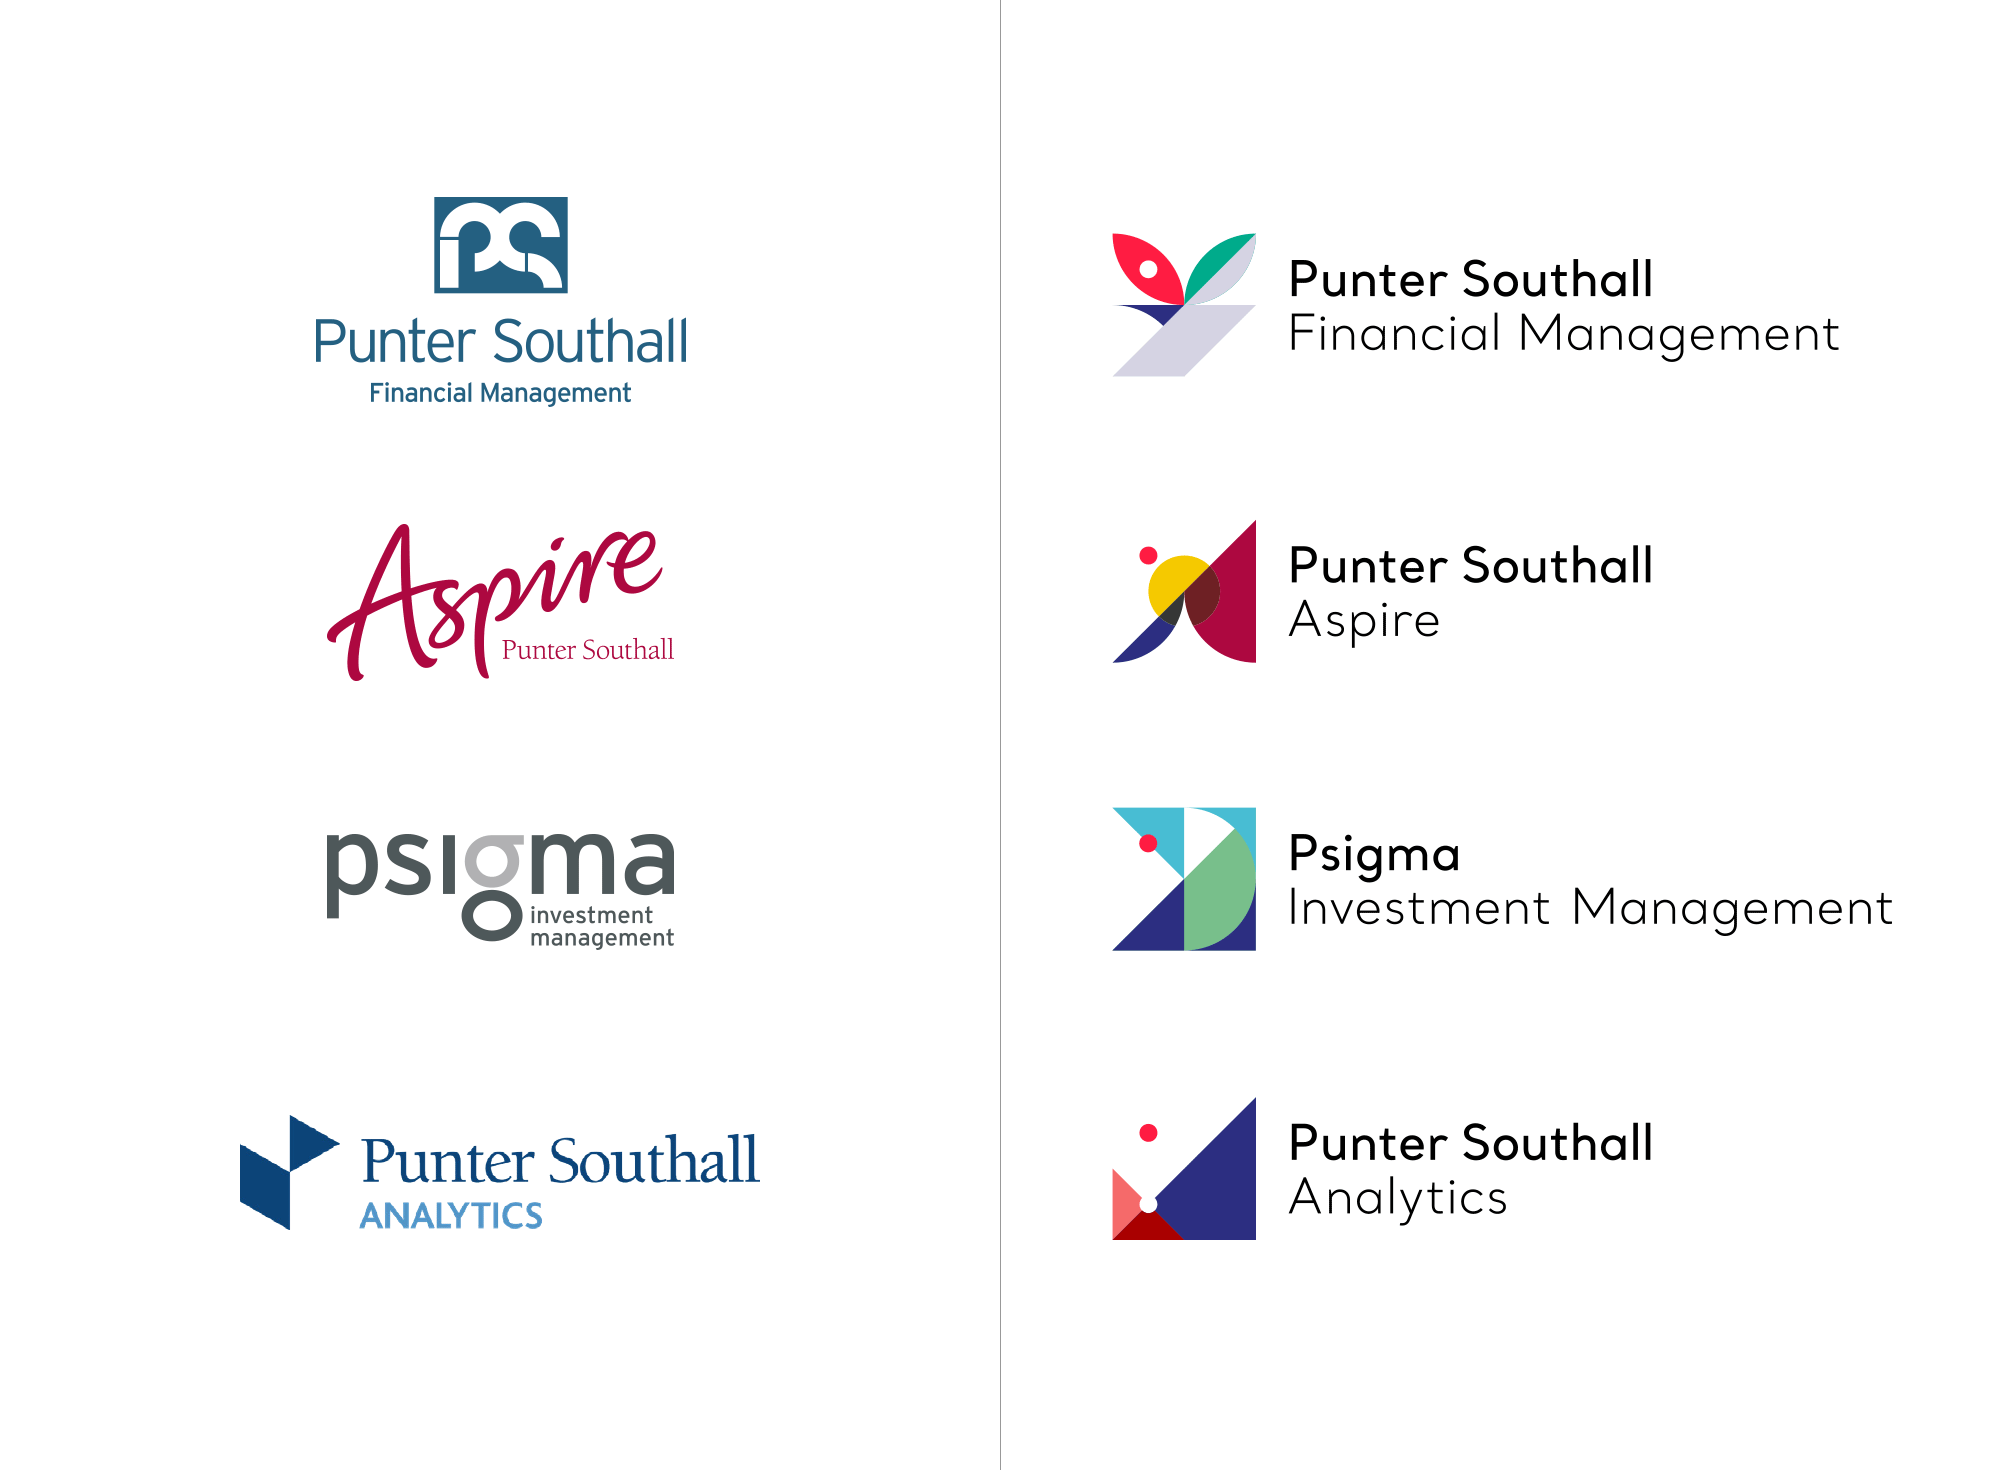 New Logo and Identity for Punter Southall Group by Future Kings